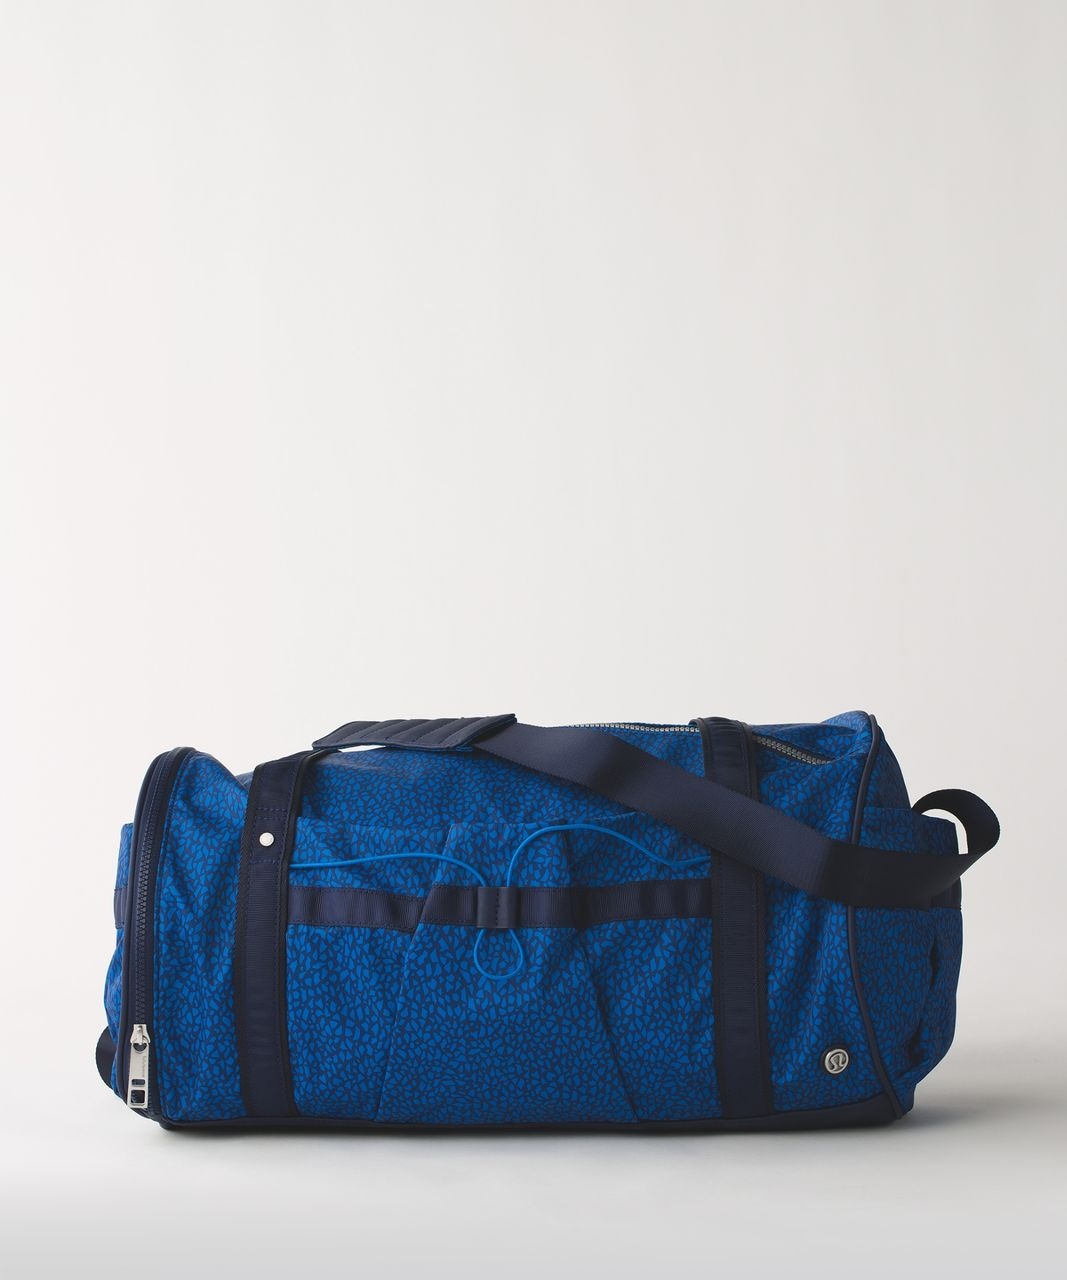 Lululemon Run Ways Duffel - Miss Mosaic Lakeside Blue Hero Blue / Hero Blue